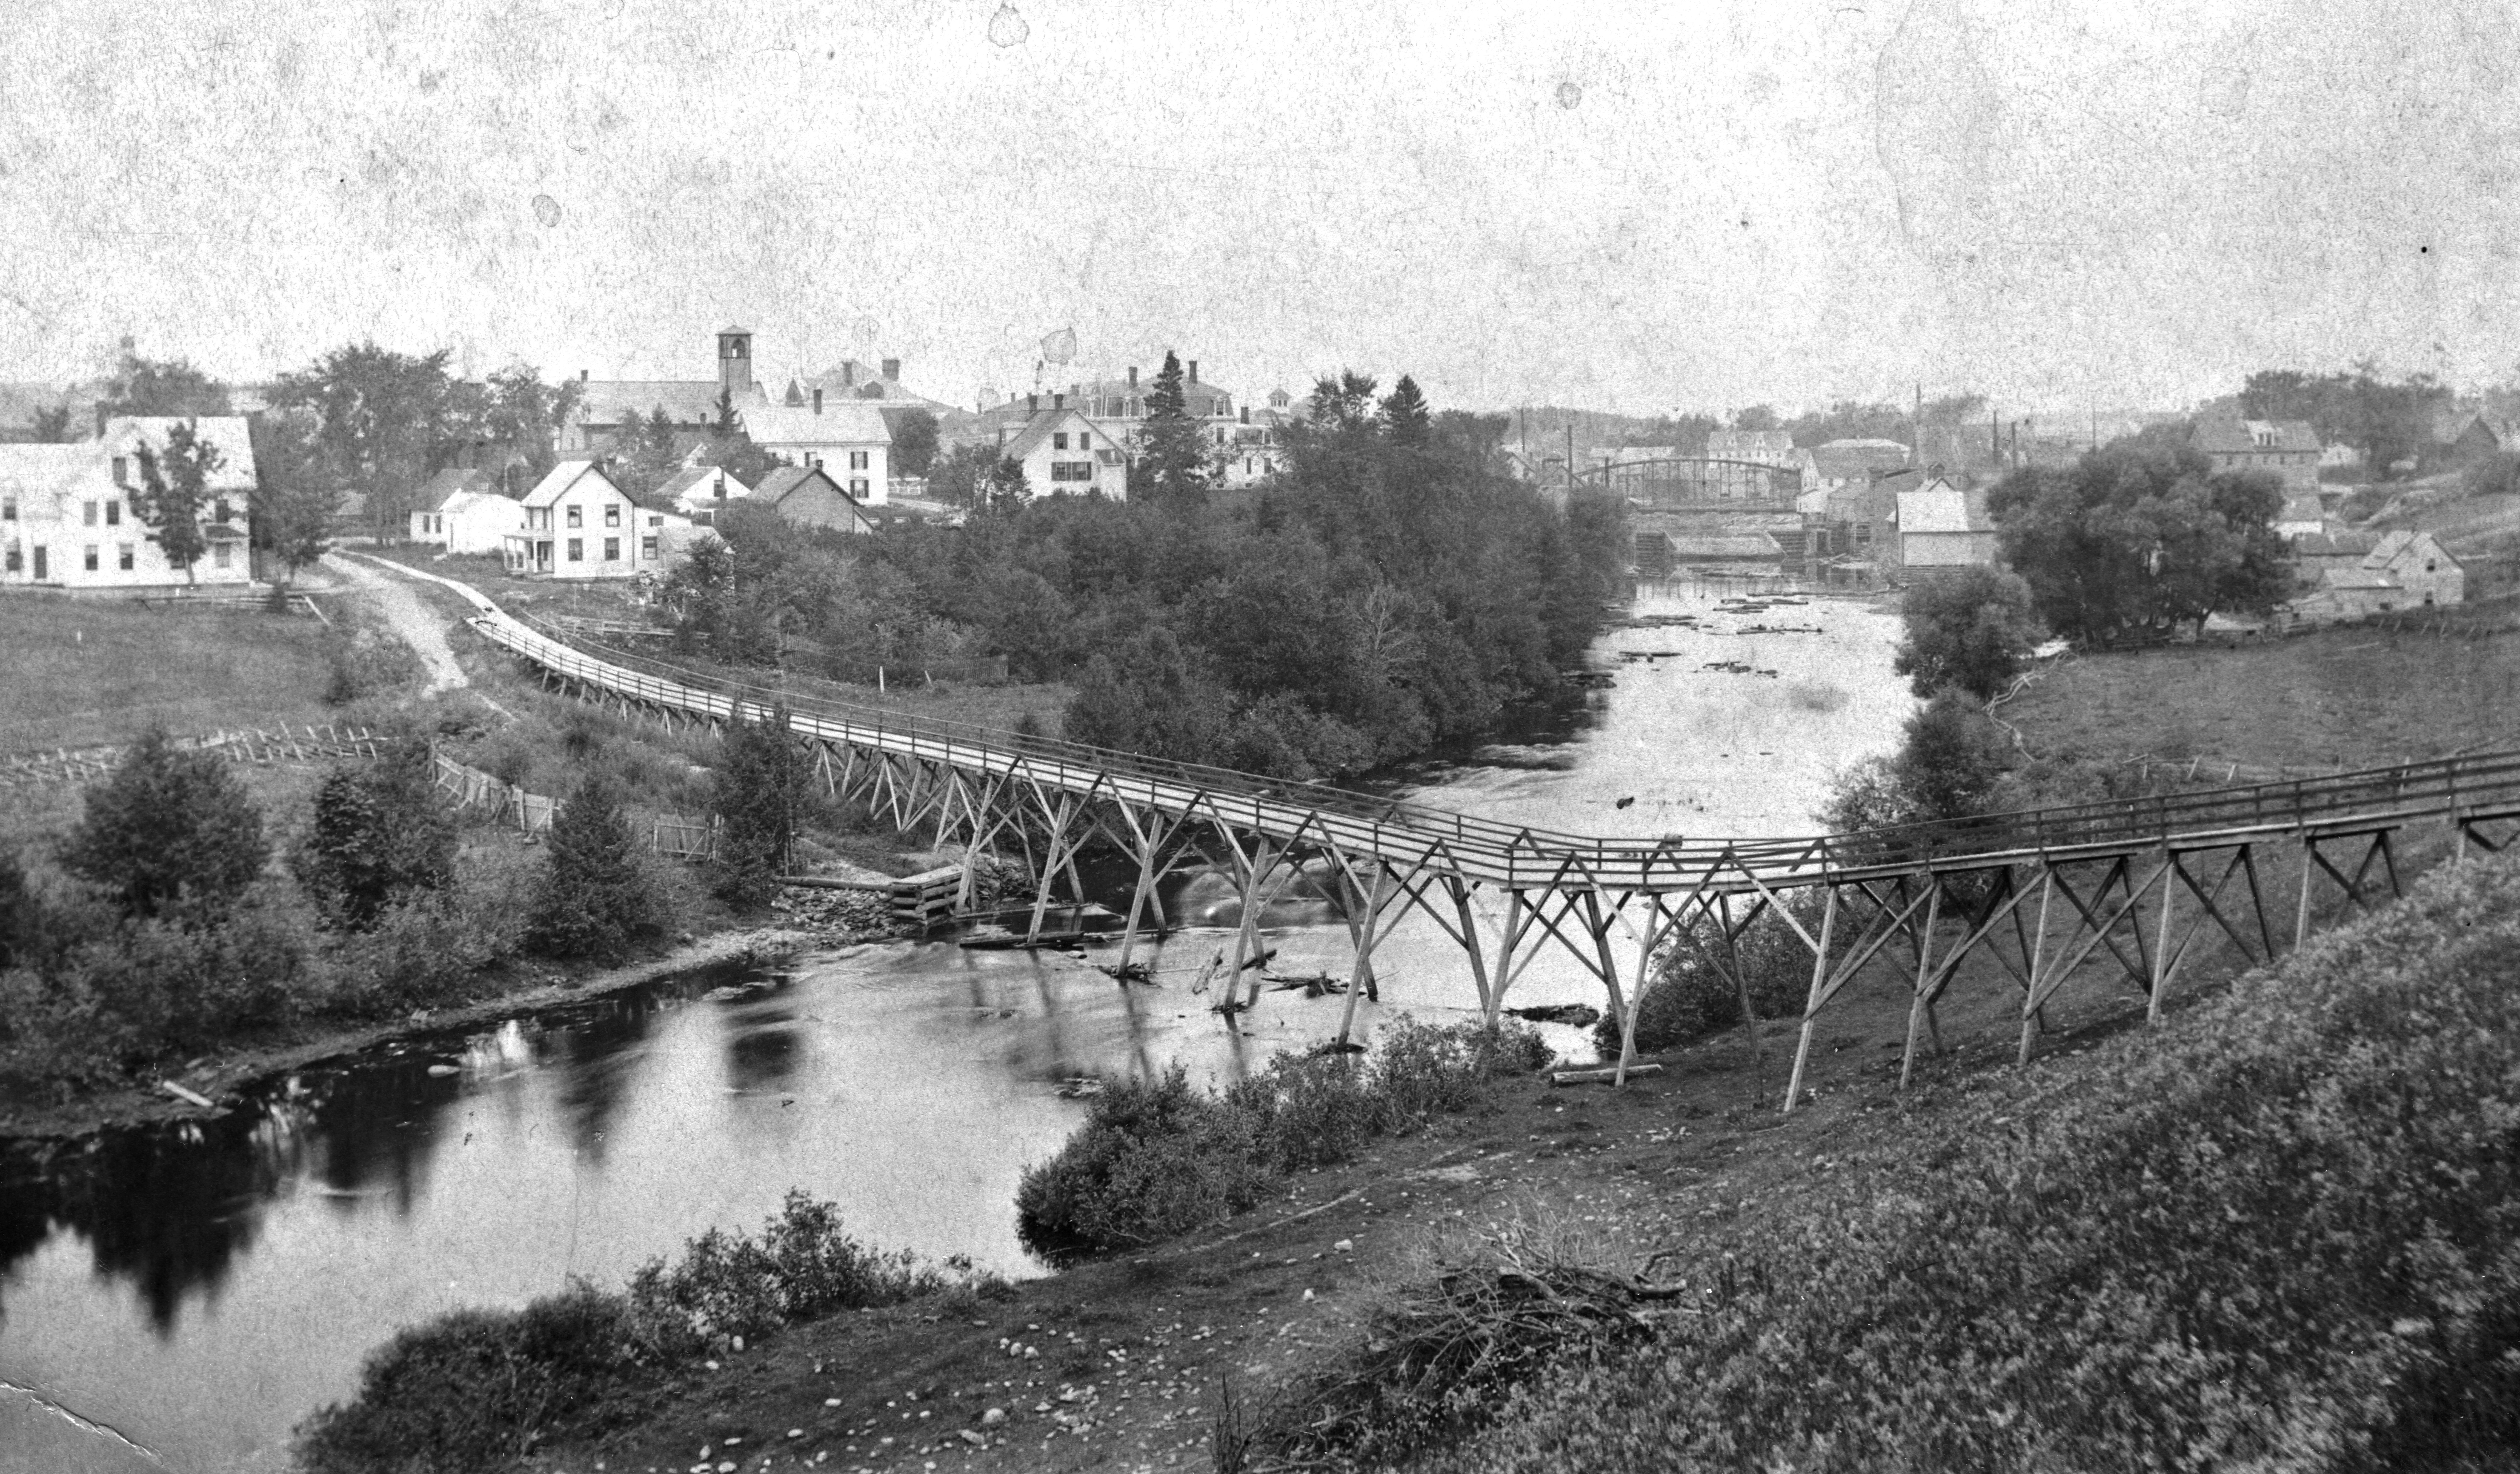 Foot bridge, built in 1890, by James Archibald, RW Shaw, Geo Nickerson, and Geo Hall